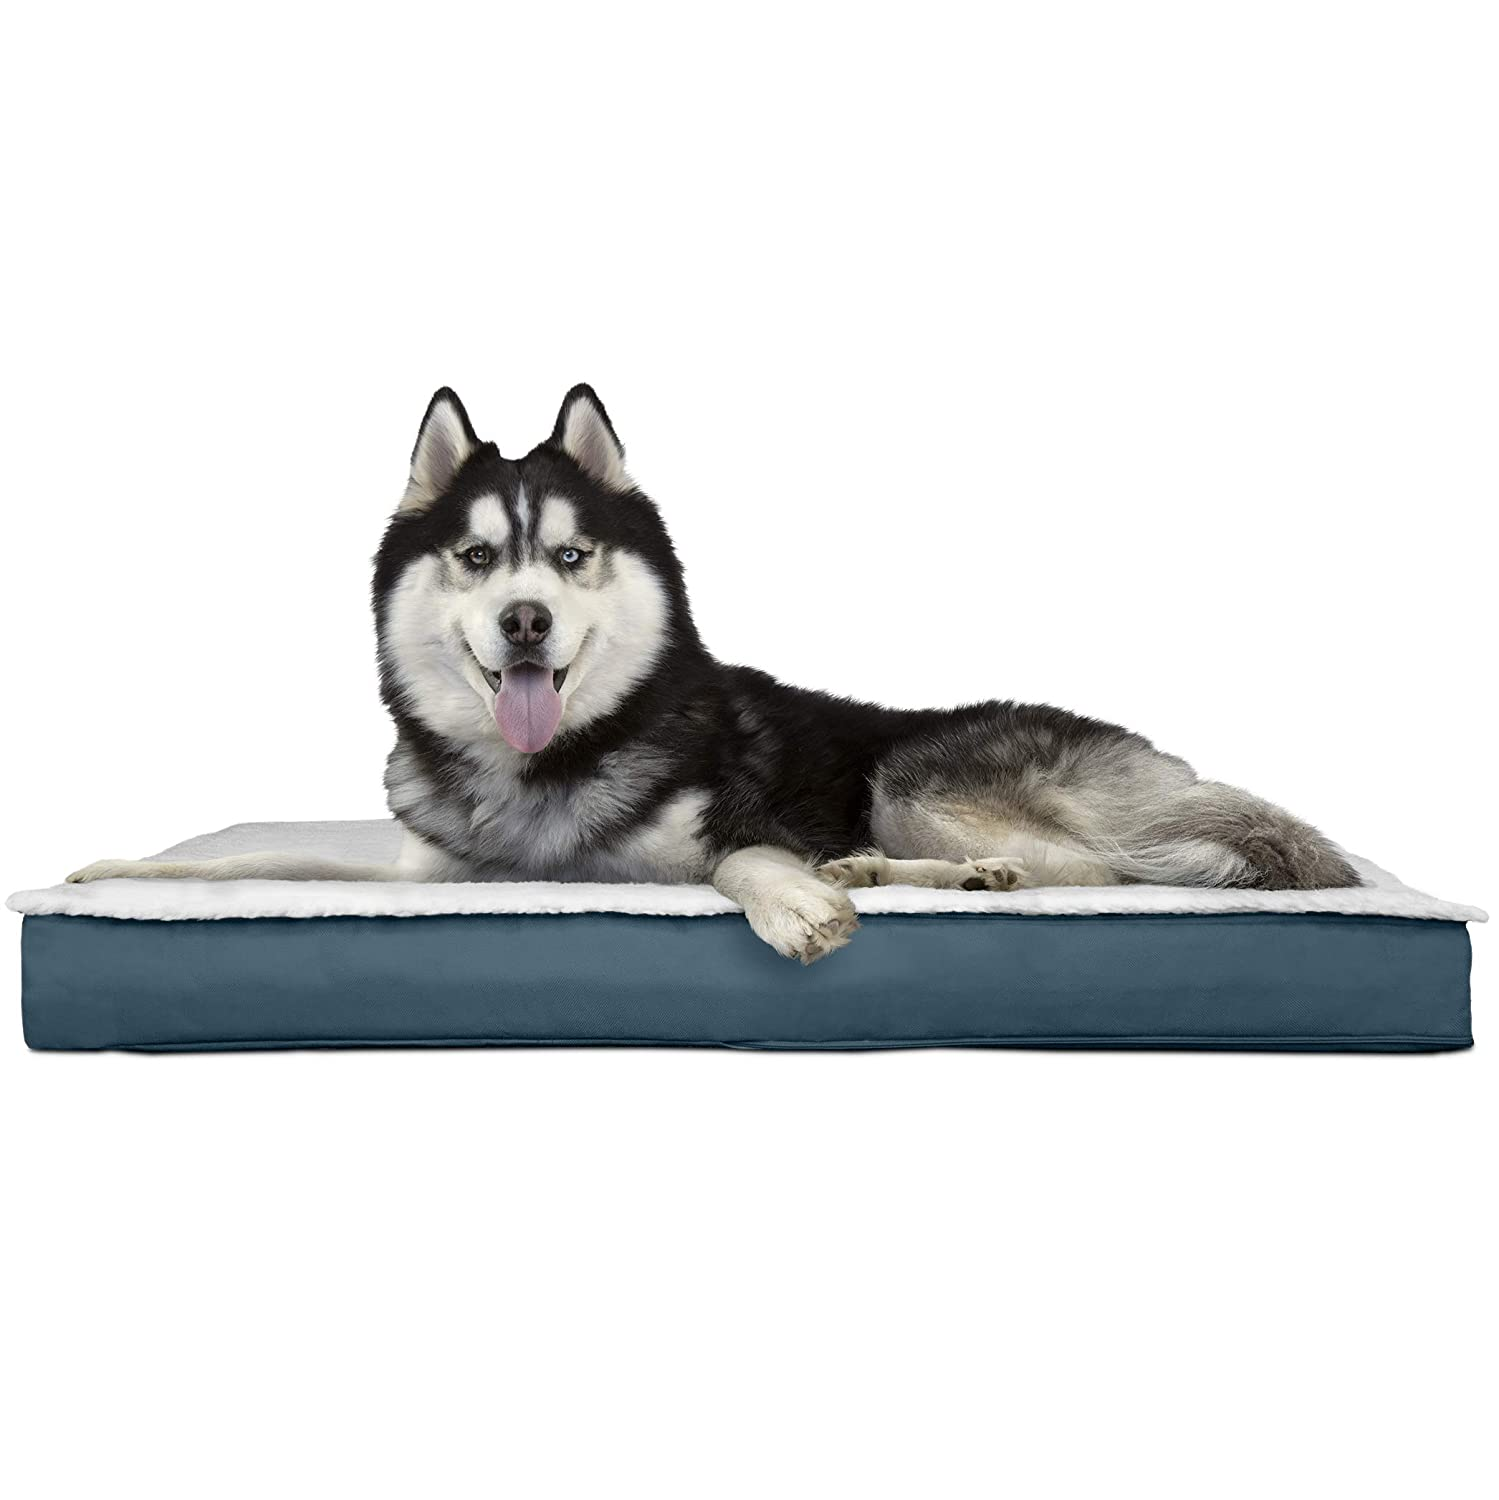 FurHaven Pet Dog Bed   Orthopedic Congreenible Sherpa Panel Outdoor Mattress Pet Bed for Dogs & Cats, Marine bluee, Jumbo